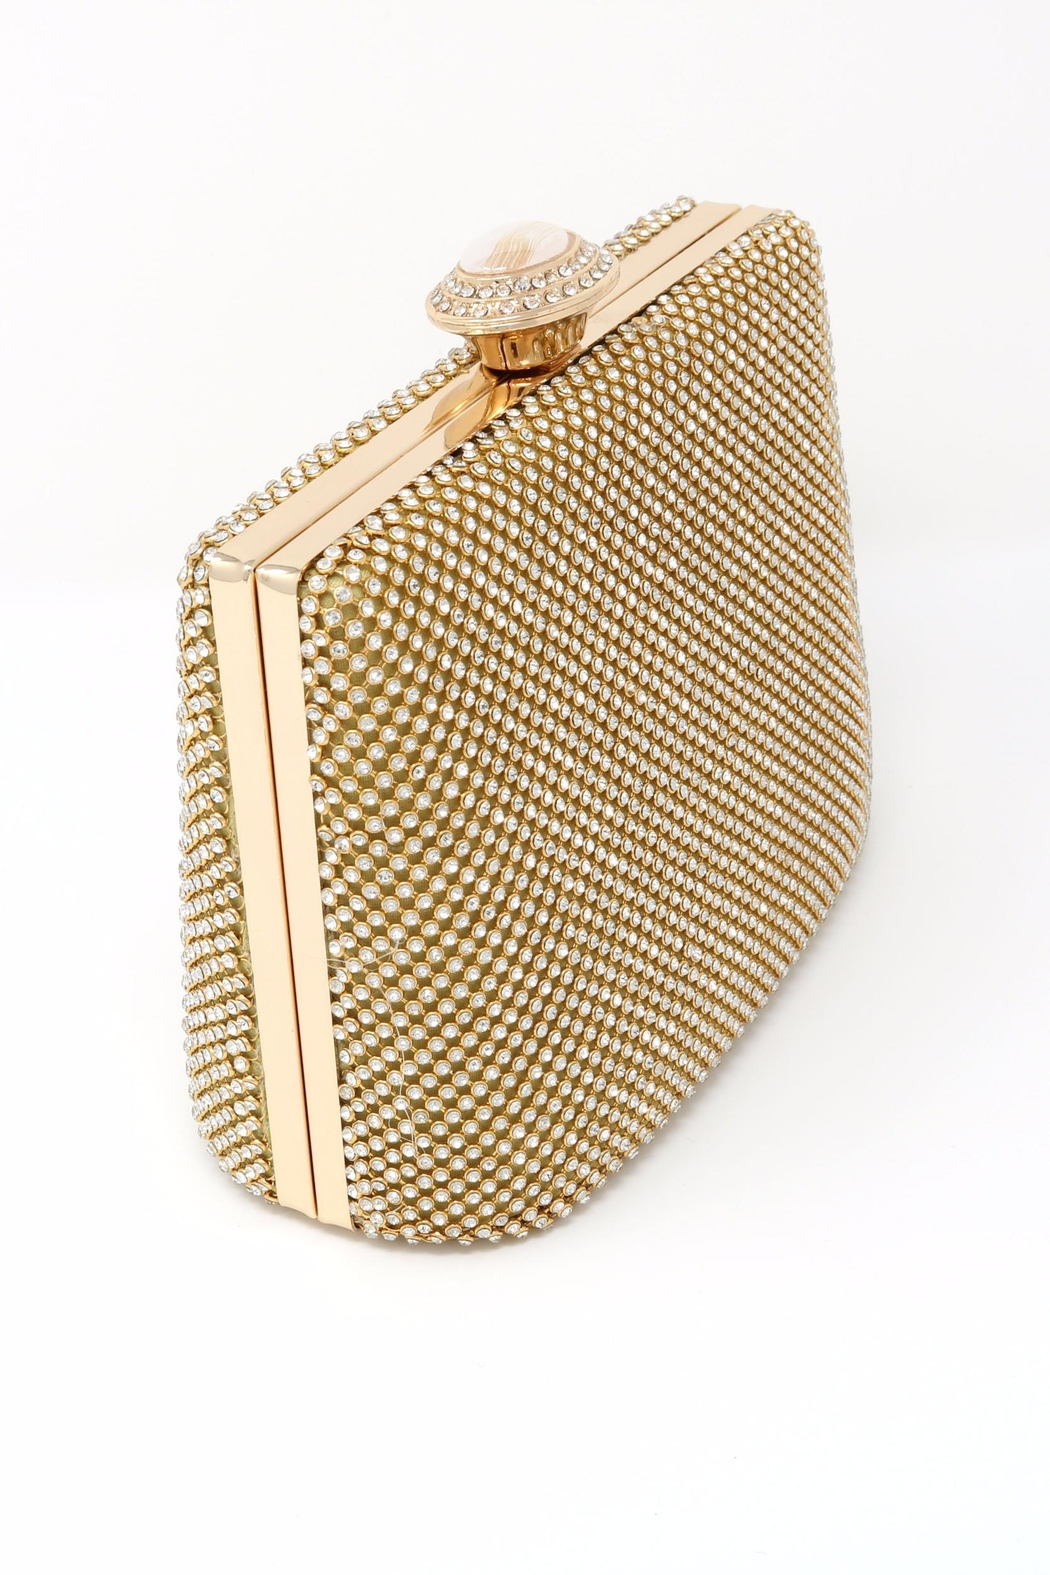 Nadya's Closet Stone Accent Evening Clutch - Side Cropped Image